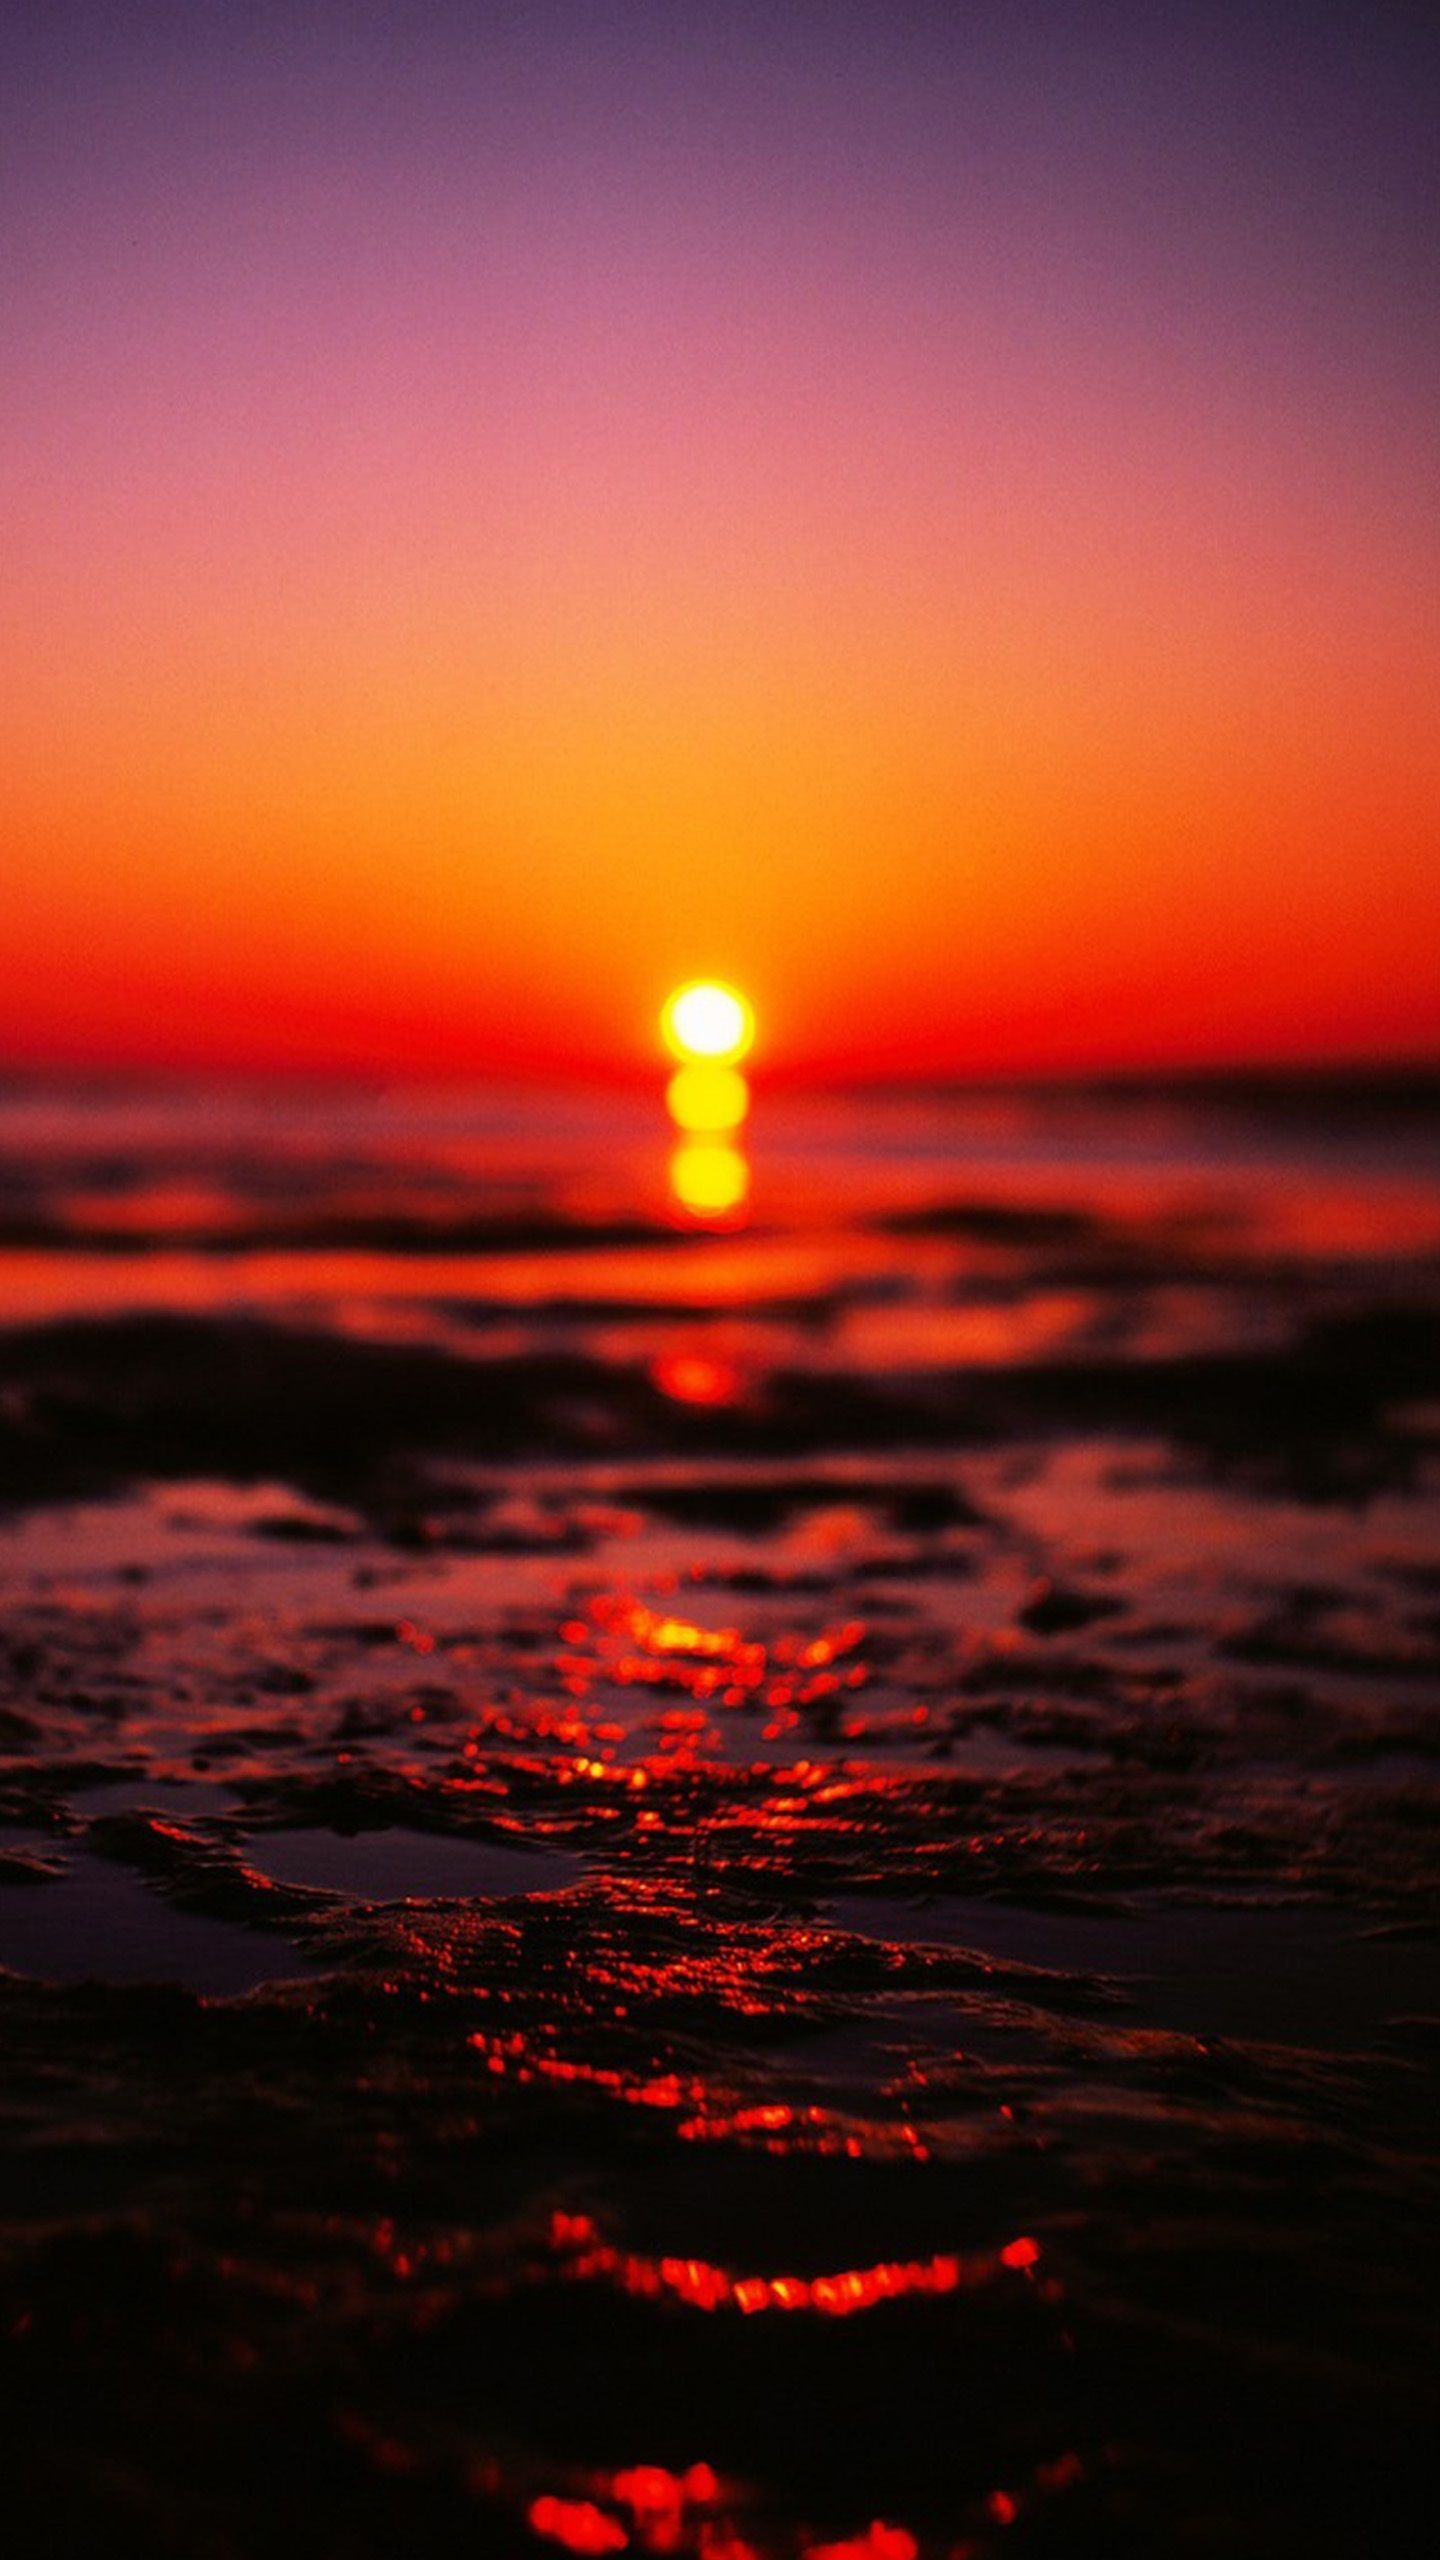 Blurry Sunset wallpapers (36 Wallpapers) HD Wallpapers